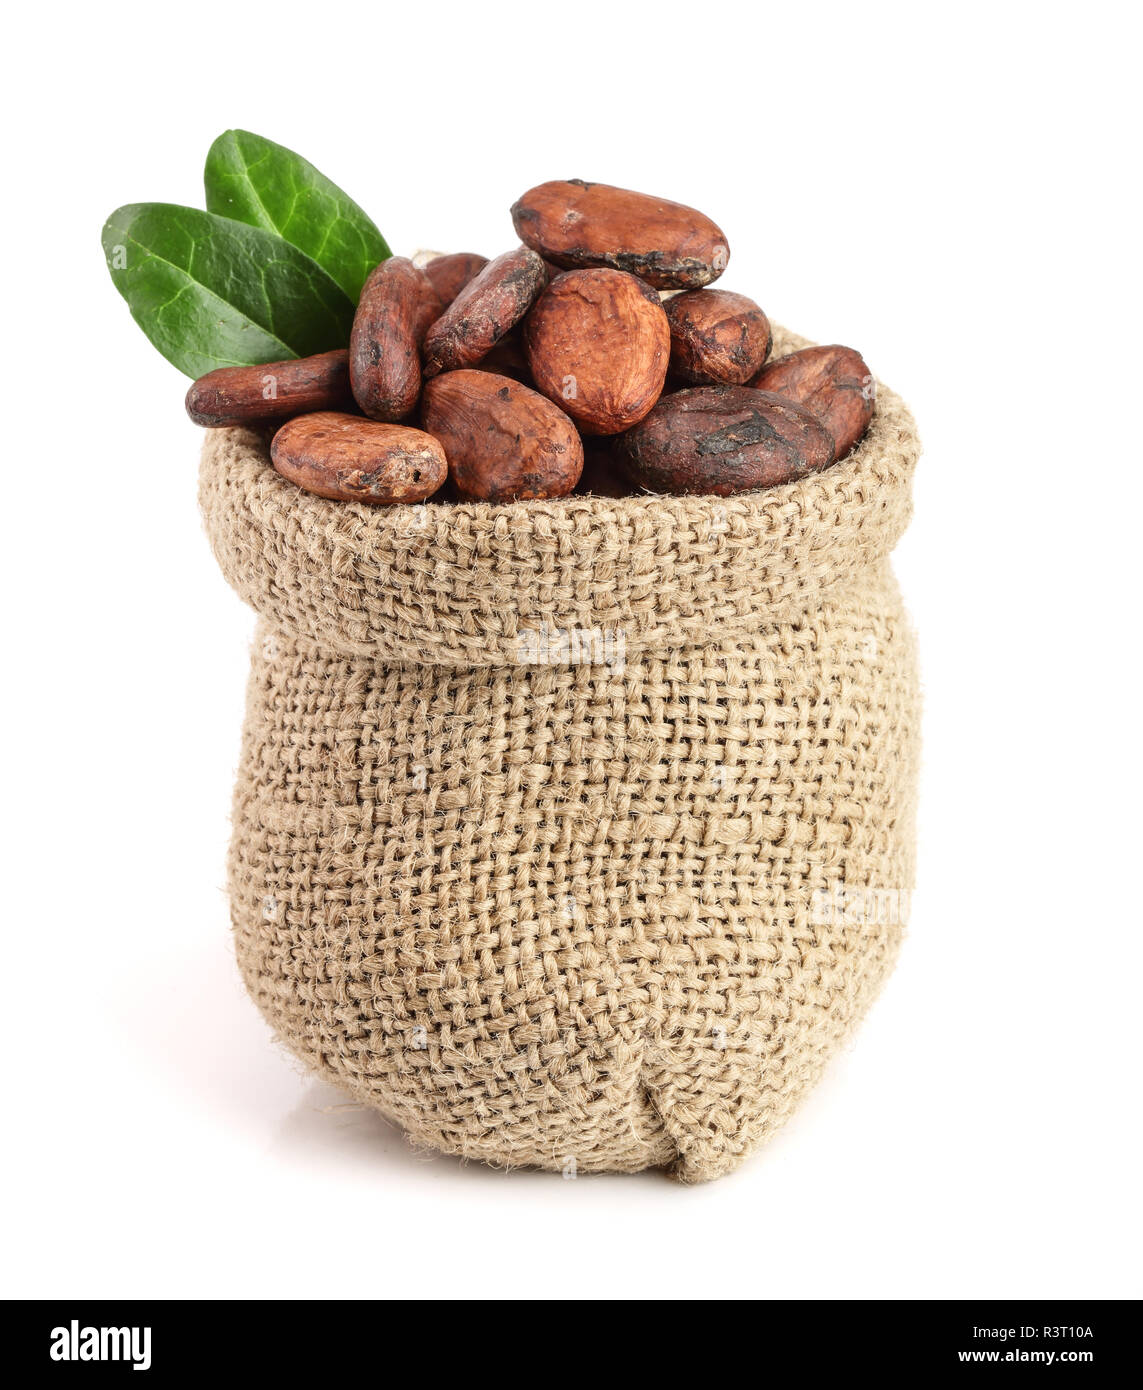 Cocoa beans in bag with leaves isolated on white background - Stock Image